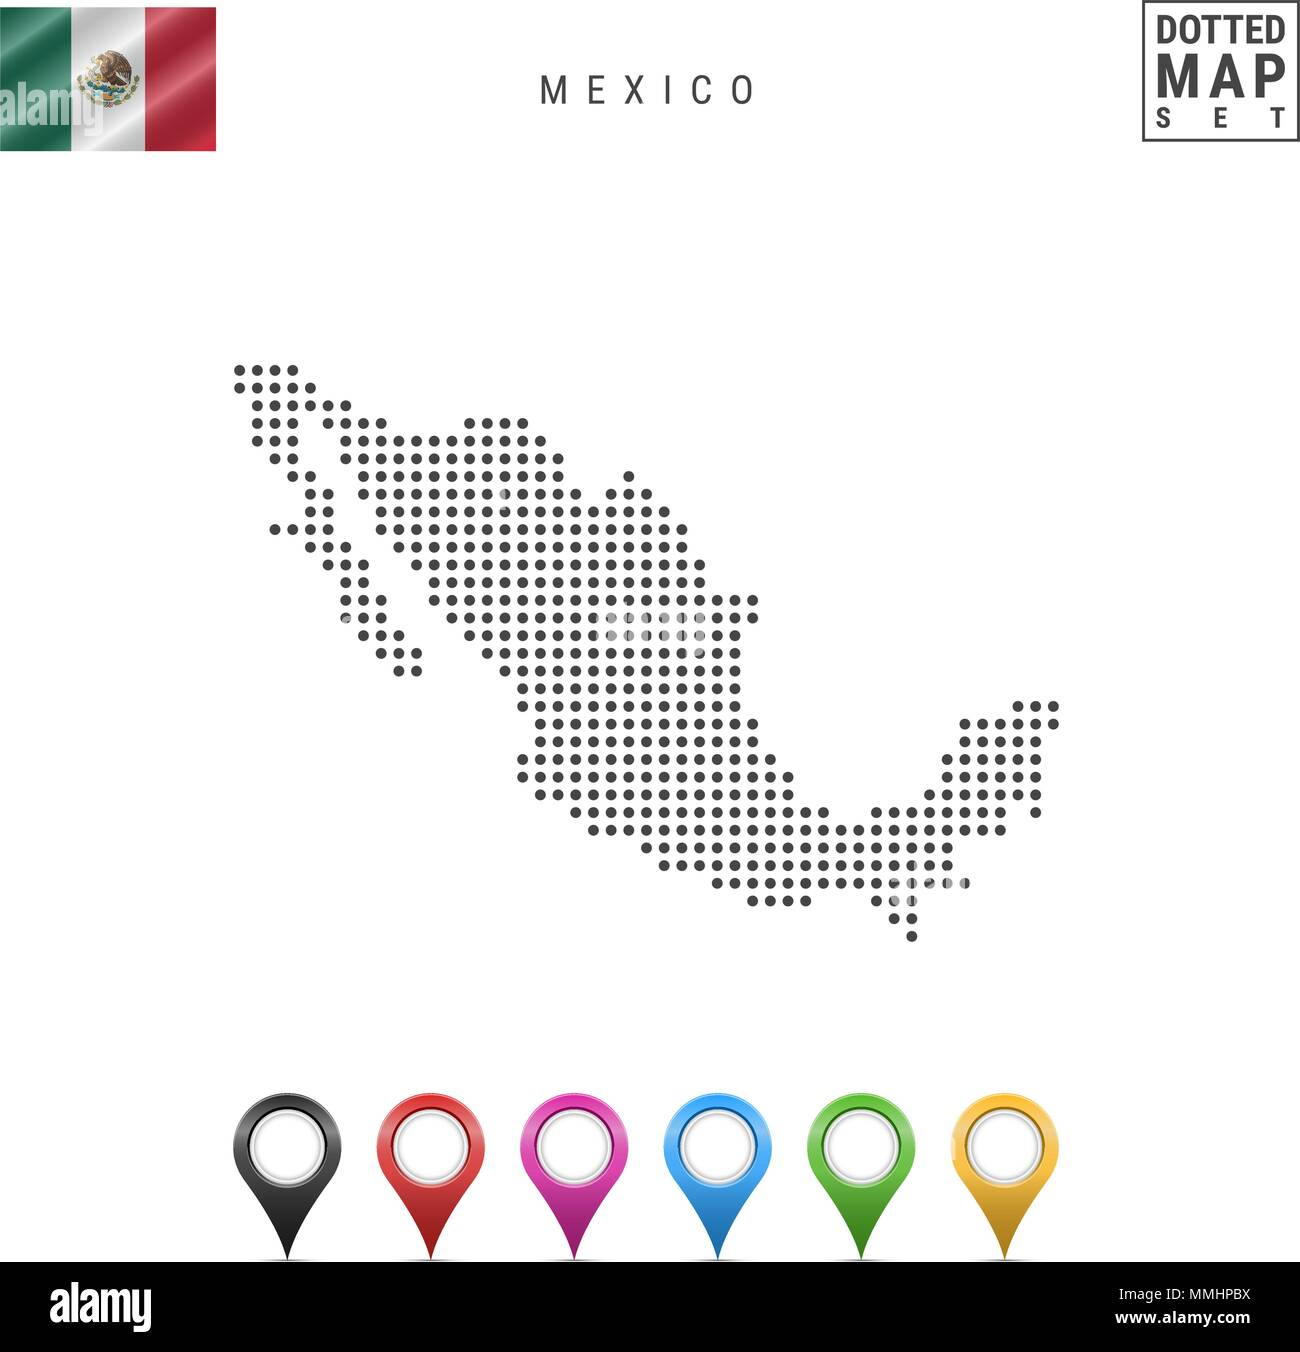 Vector Dotted Map Of Mexico Simple Silhouette Of Mexico The